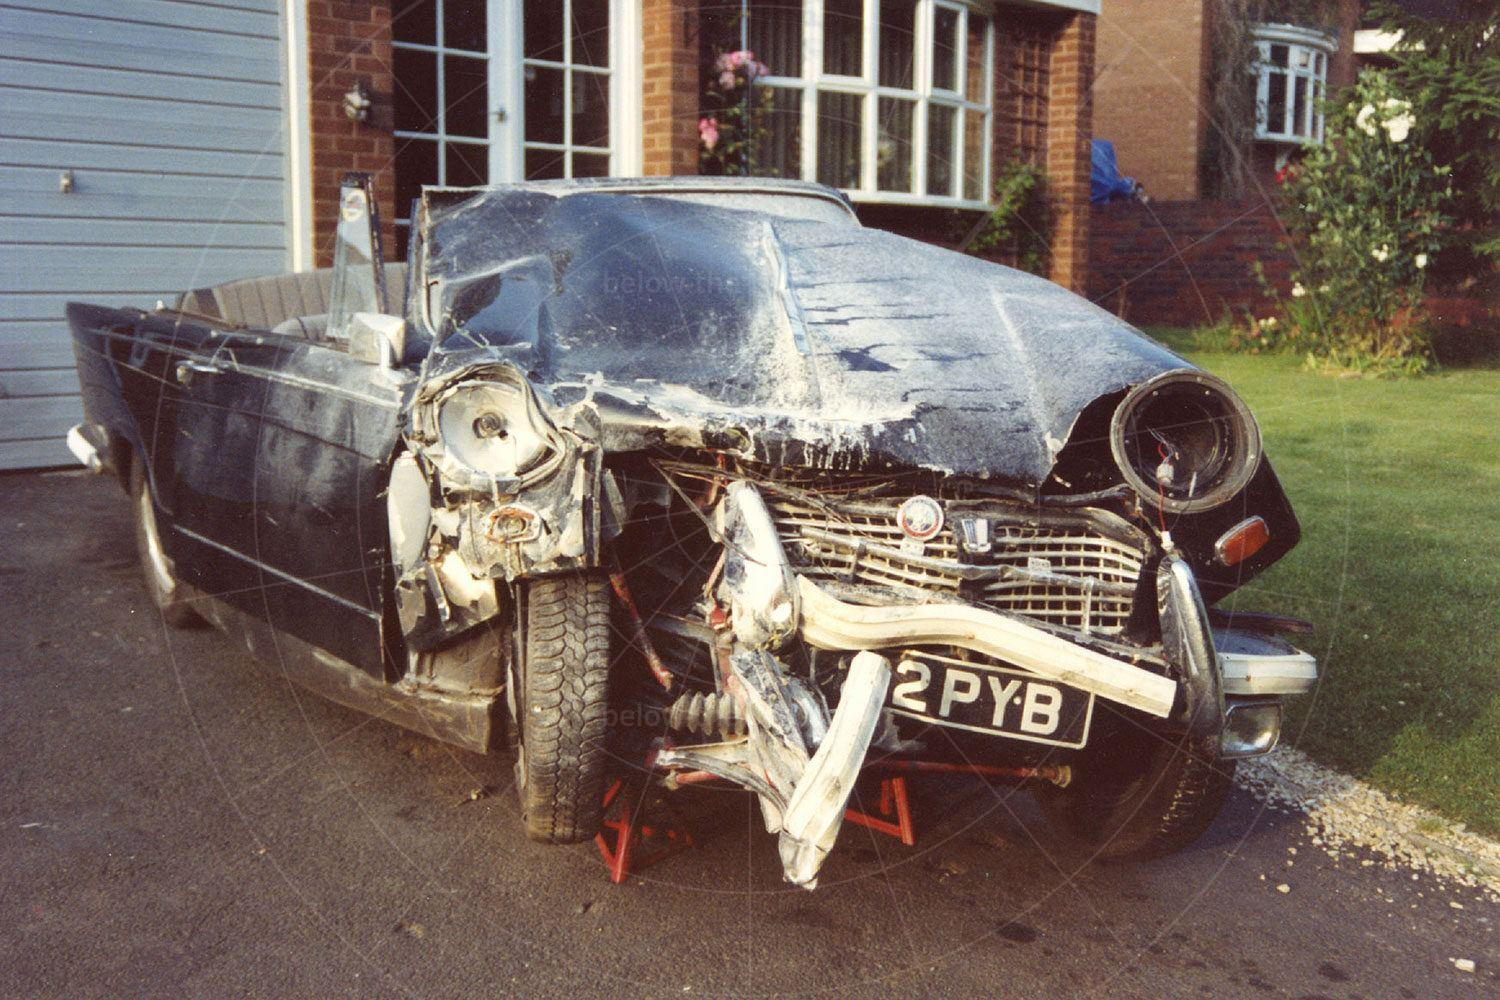 In June 1992 the Herald was destroyed in a crash Pic: magiccarpics.co.uk | In June 1992 the Herald was destroyed in a crash